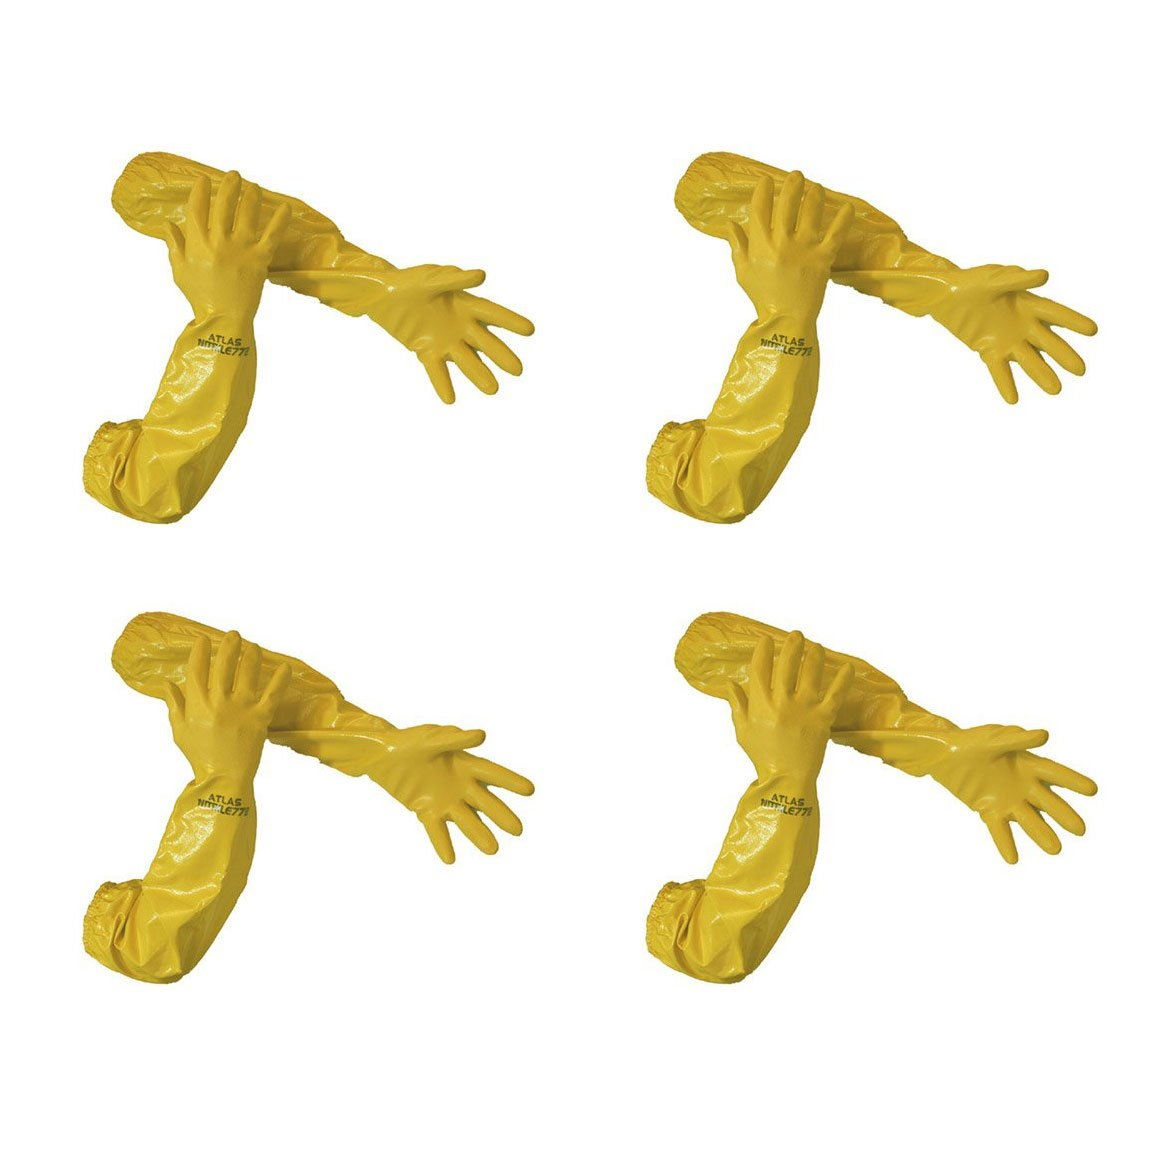 Atlas 772 26-inch Nitrile Medium Elbow Chemical Resistant Yellow Gloves, 4-Pairs by ATLAS (Image #1)